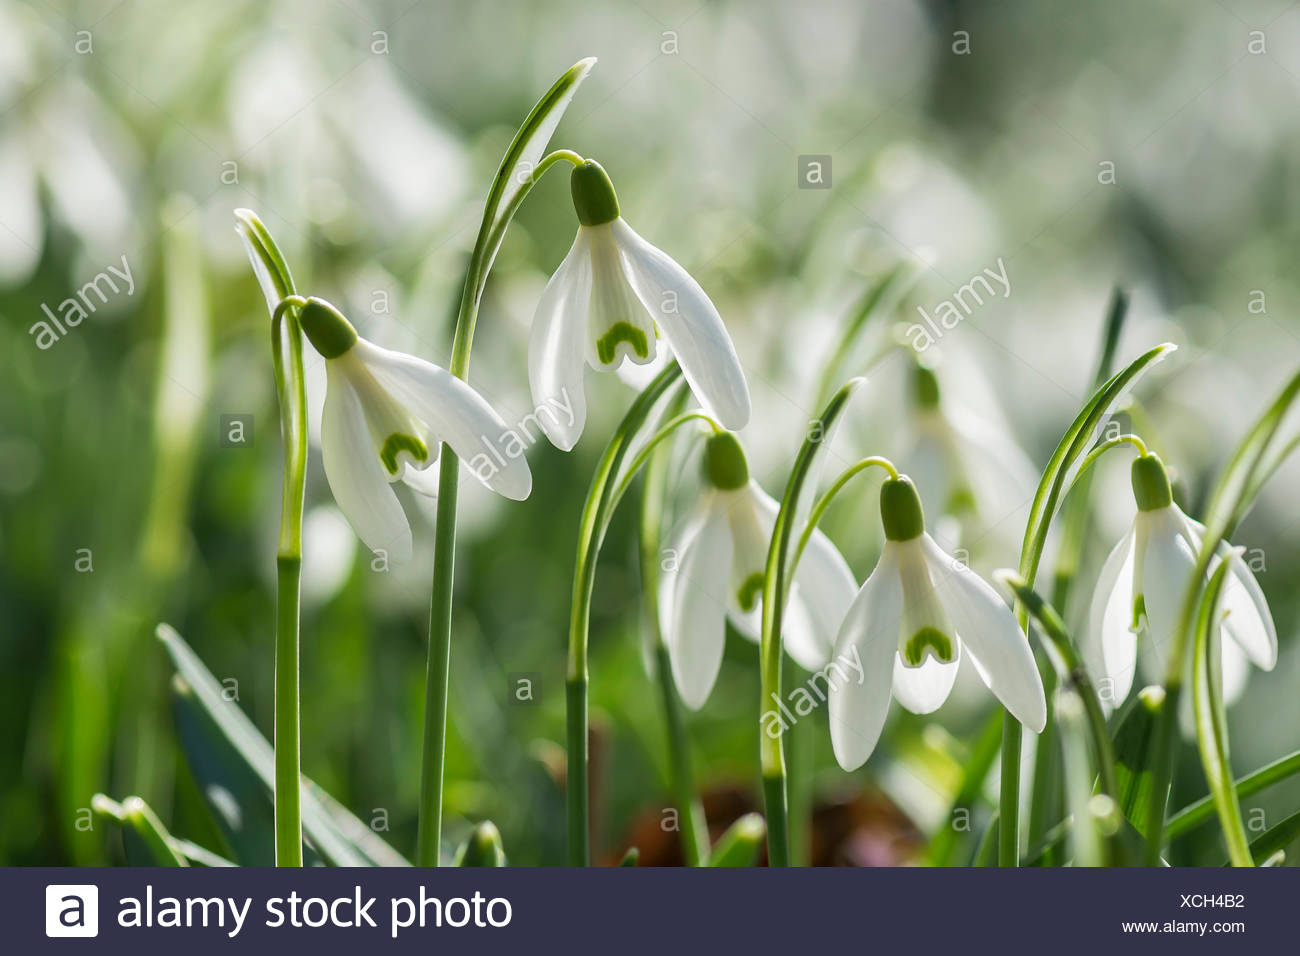 Snowdrop Common Snowdrop Galanthus Nivalis Small White Flowers